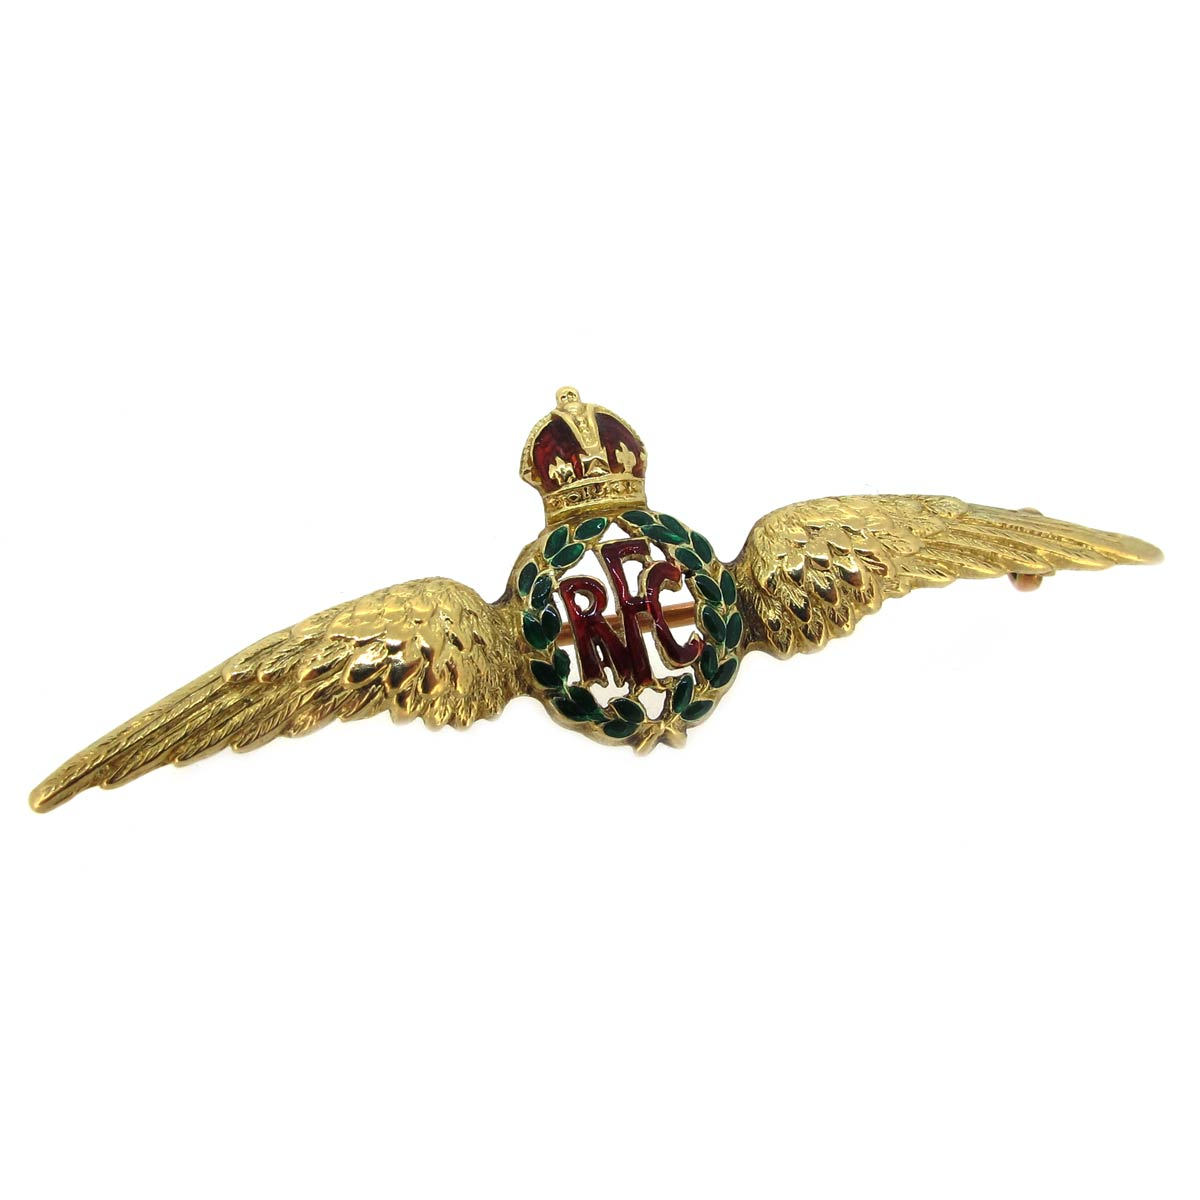 Antique Regimental Royal Flying Corps Brooch